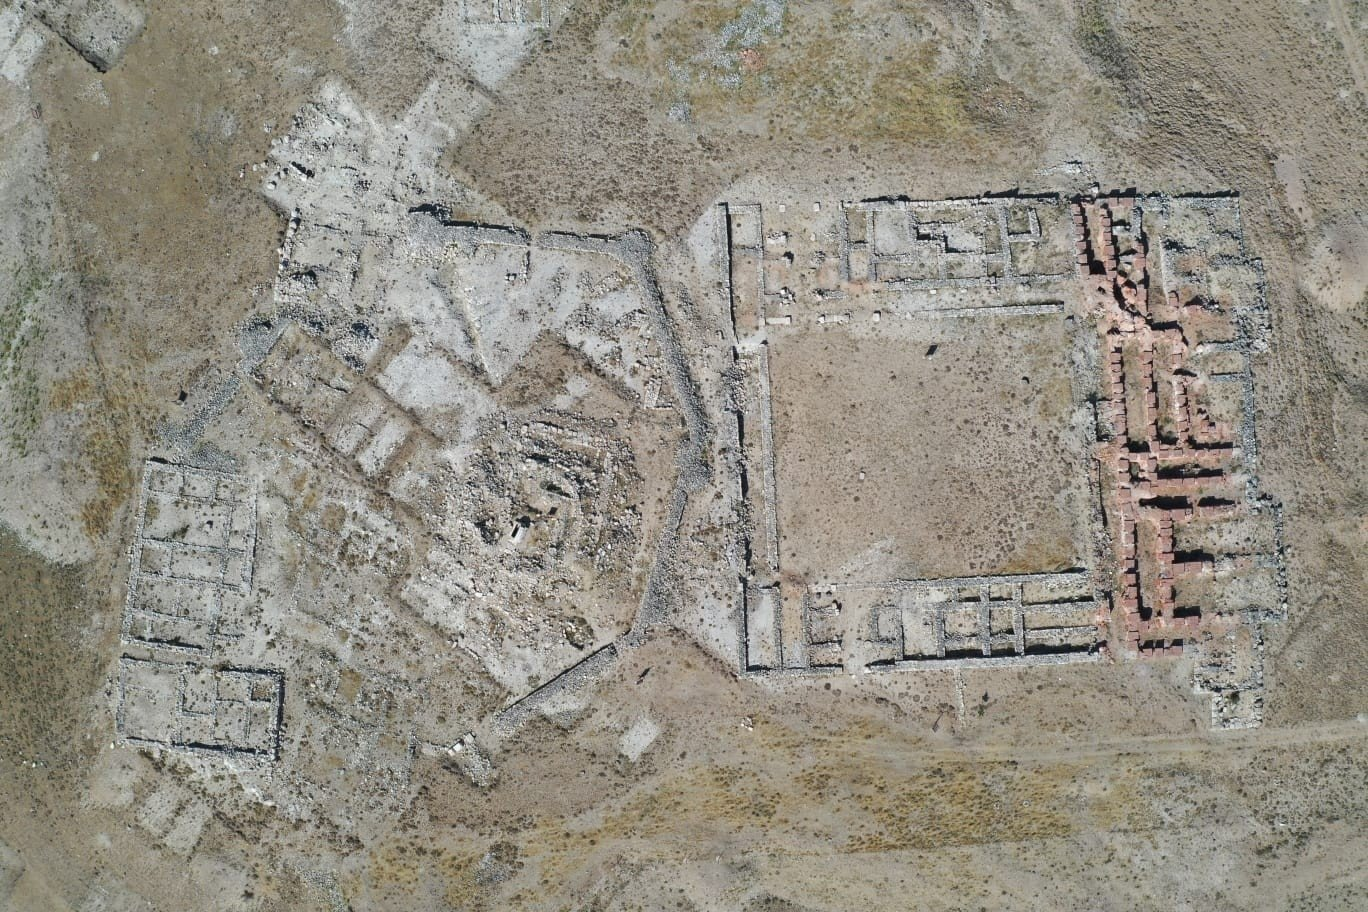 An aerial view from the archaeological site of Kuşaklı, Sivas, central Turkey, Aug. 6, 2021. (IHA Photo)